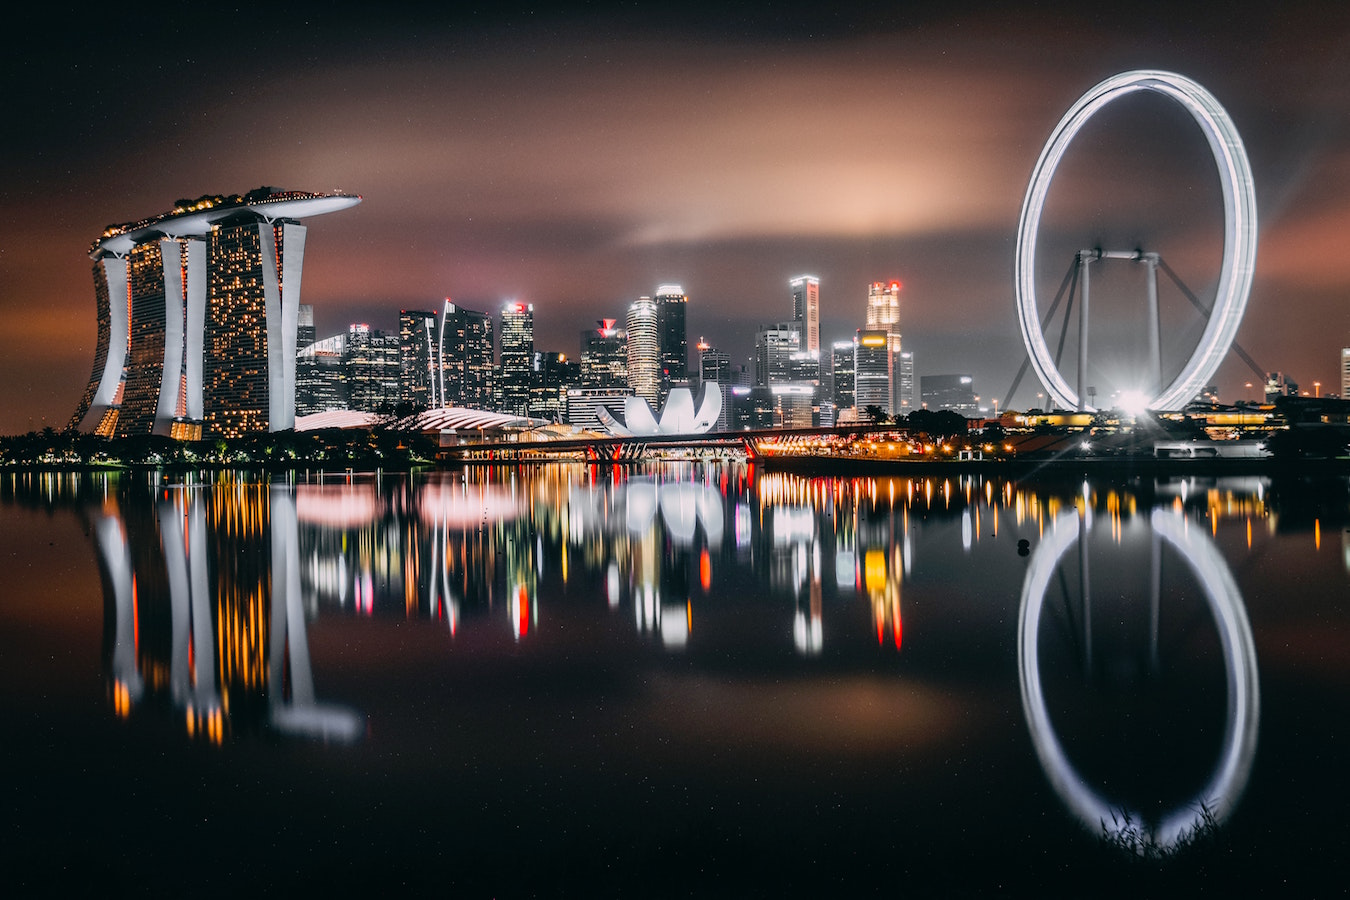 singapore from the water at night